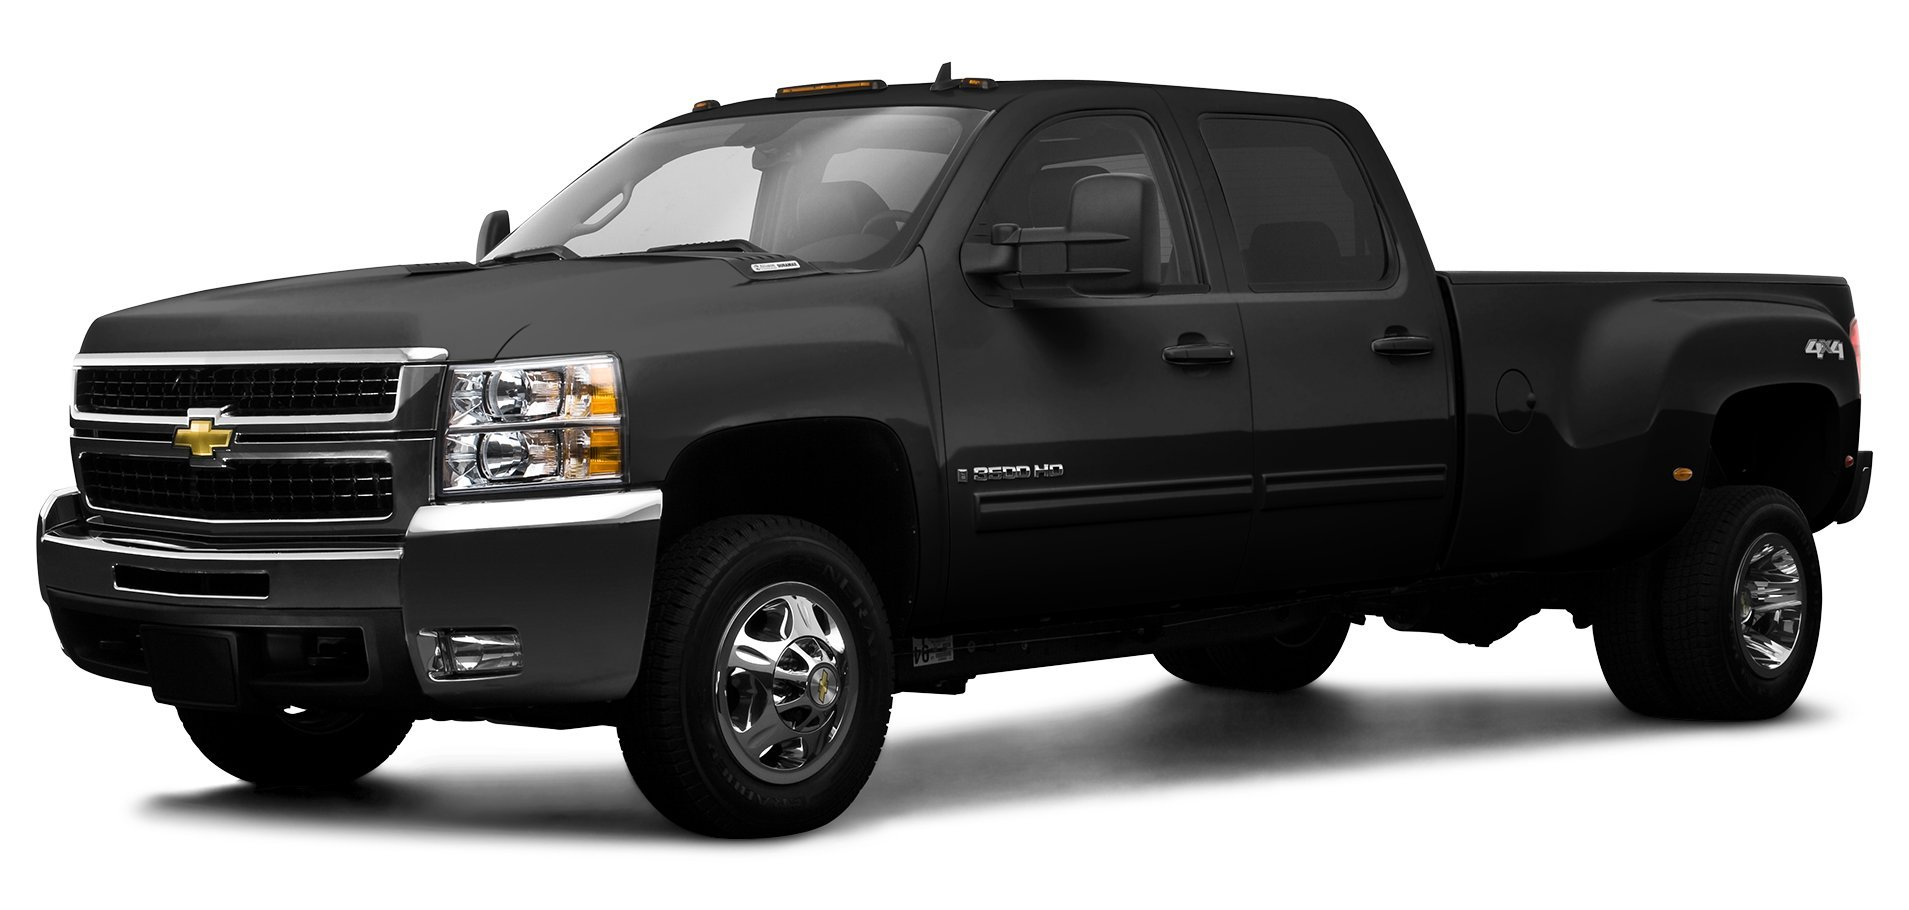 2009 gmc sierra 1500 reviews images and specs vehicles. Black Bedroom Furniture Sets. Home Design Ideas